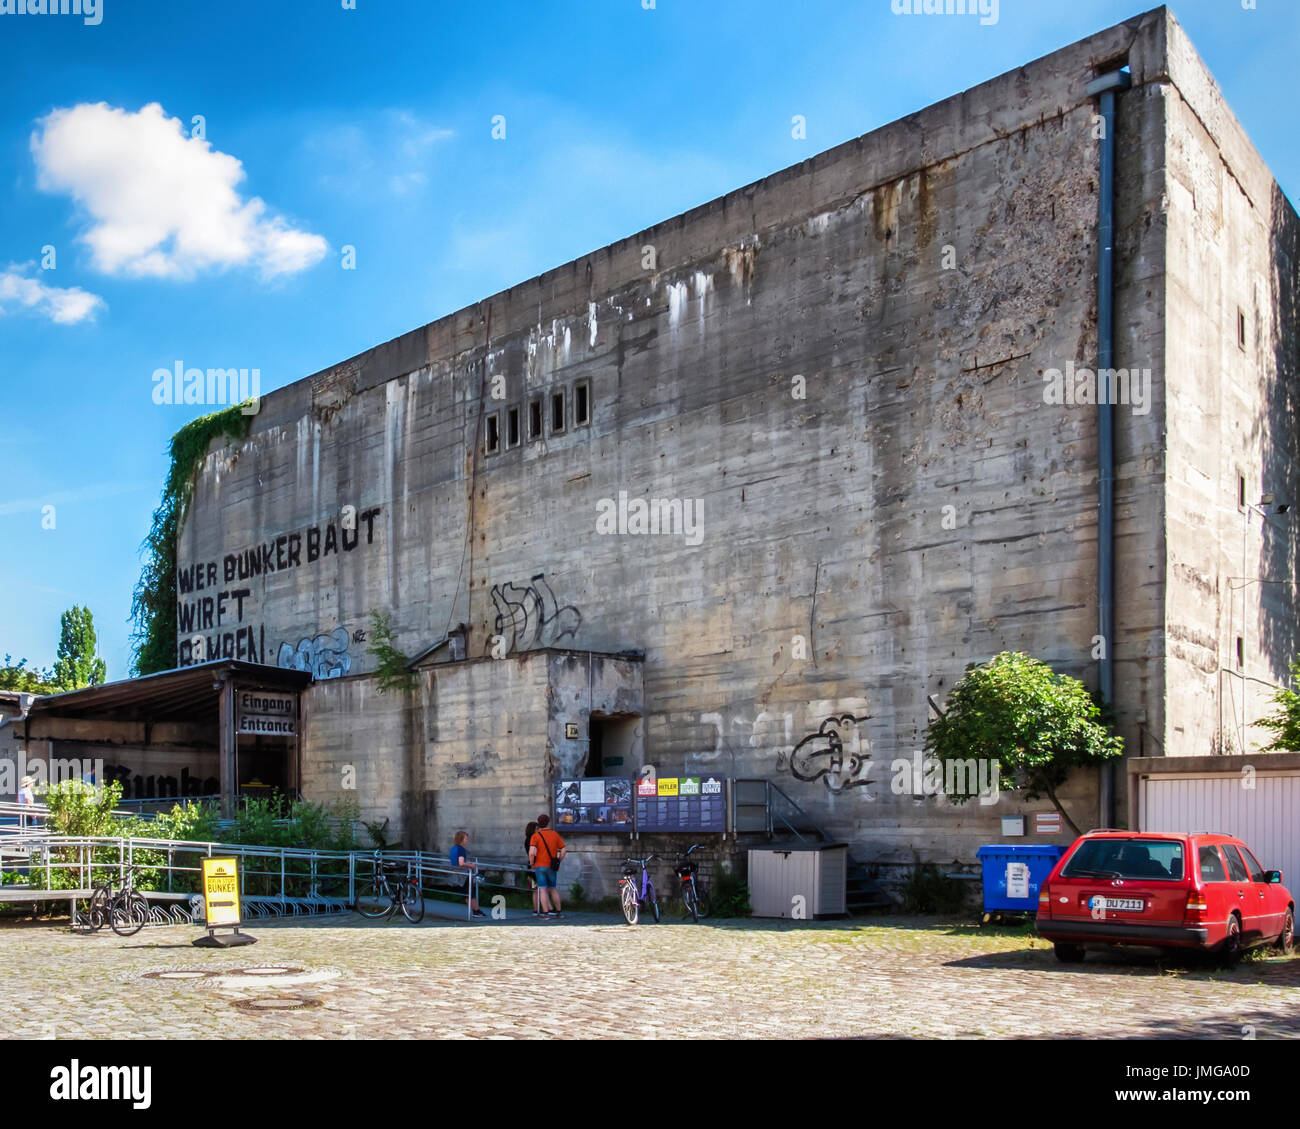 Berlin, Mitte.The Berlin Story Museum in a World War II air-raid shelter is a popular tourist attraction with exhibitions based on historical events.  - Stock Image